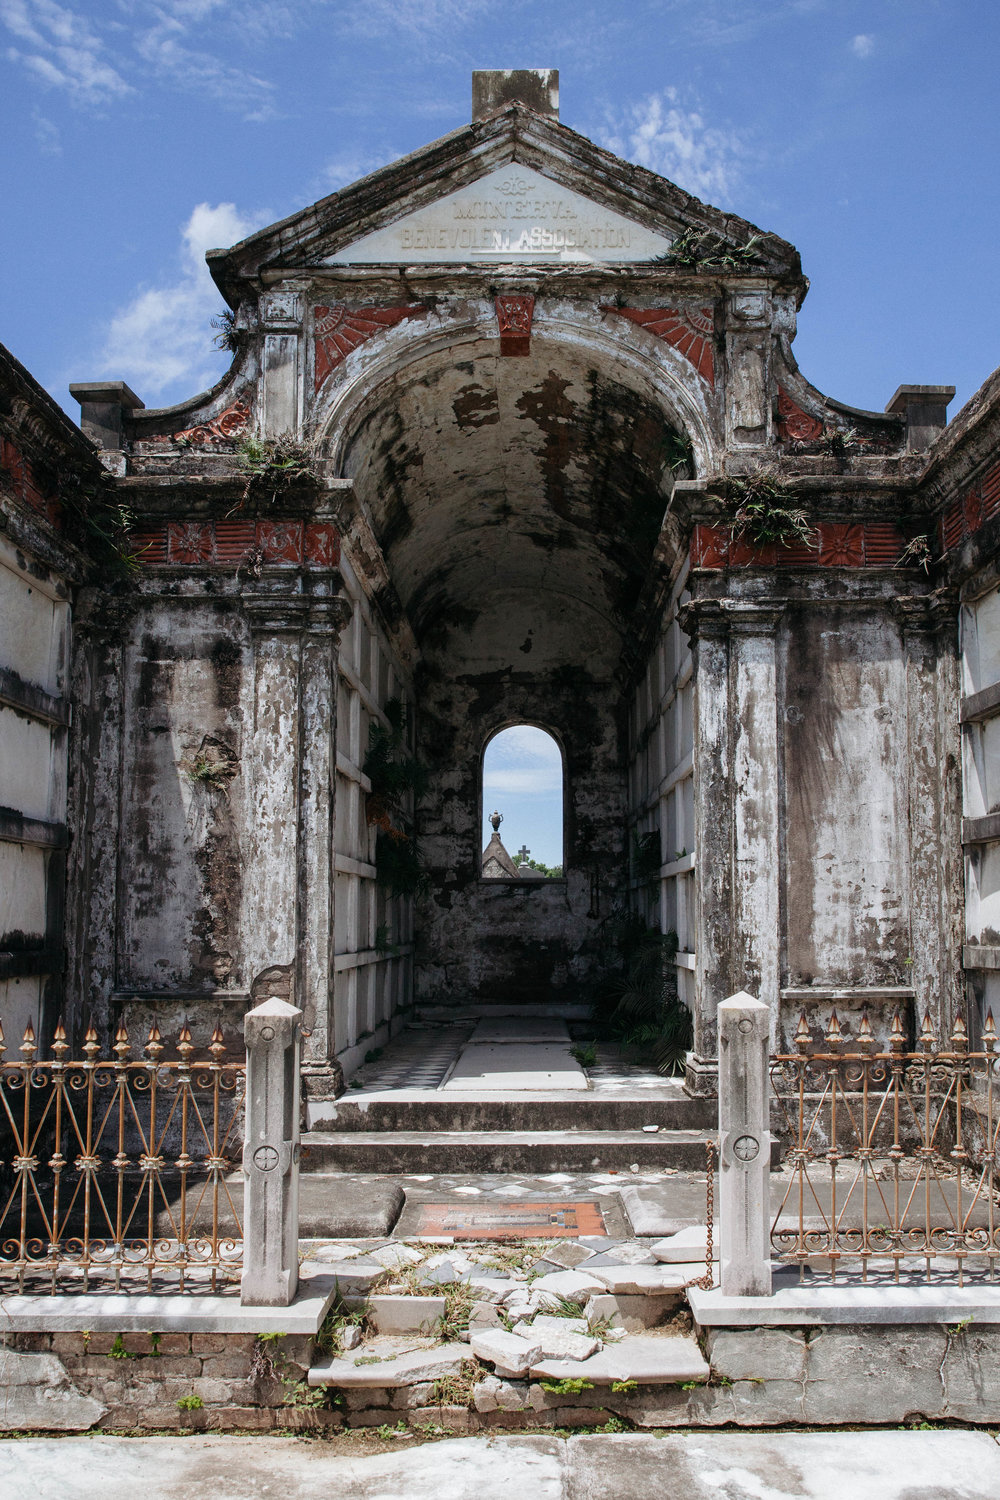 A dilapidated tomb in Metairie Cemetery in New Orleans.